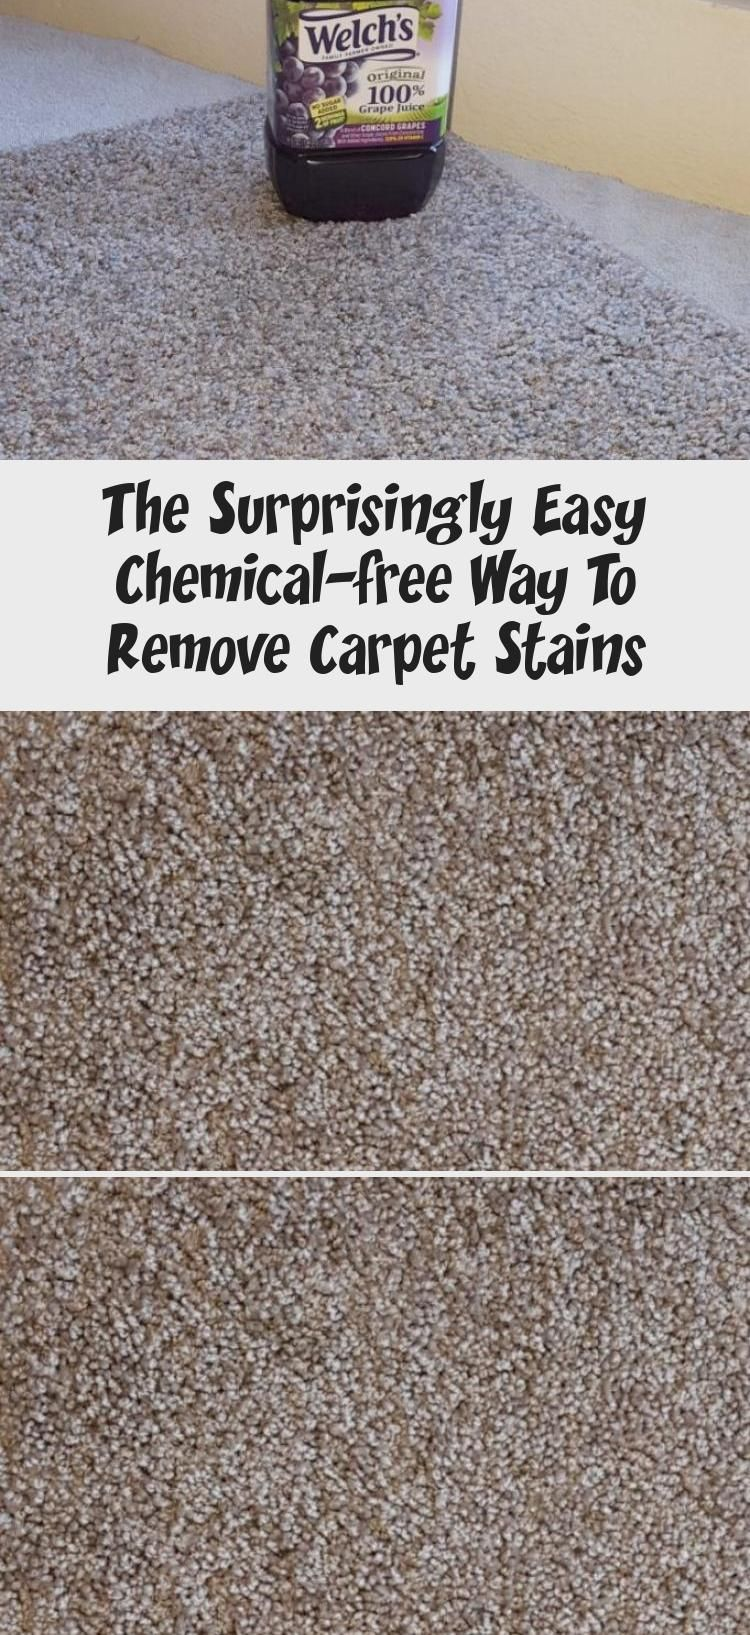 Spot Cleaner Carpet Stain Removal Diy Carpet Stain Remover Chemical Free Natural Stain Remove In 2020 Diy Carpet Stain Remover Stain Remover Carpet Carpet Stains